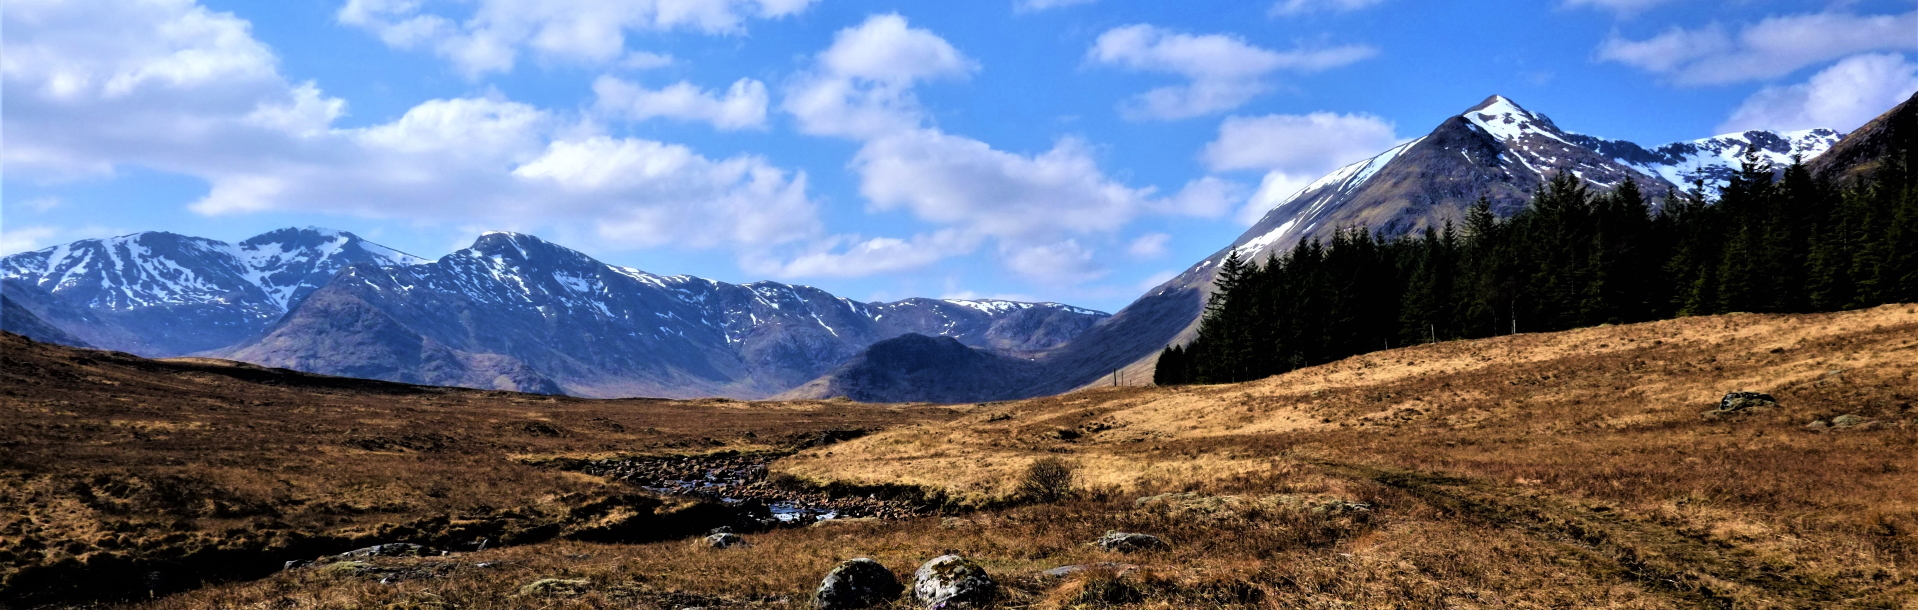 The Black Mount Hills on the way to Glen Coe